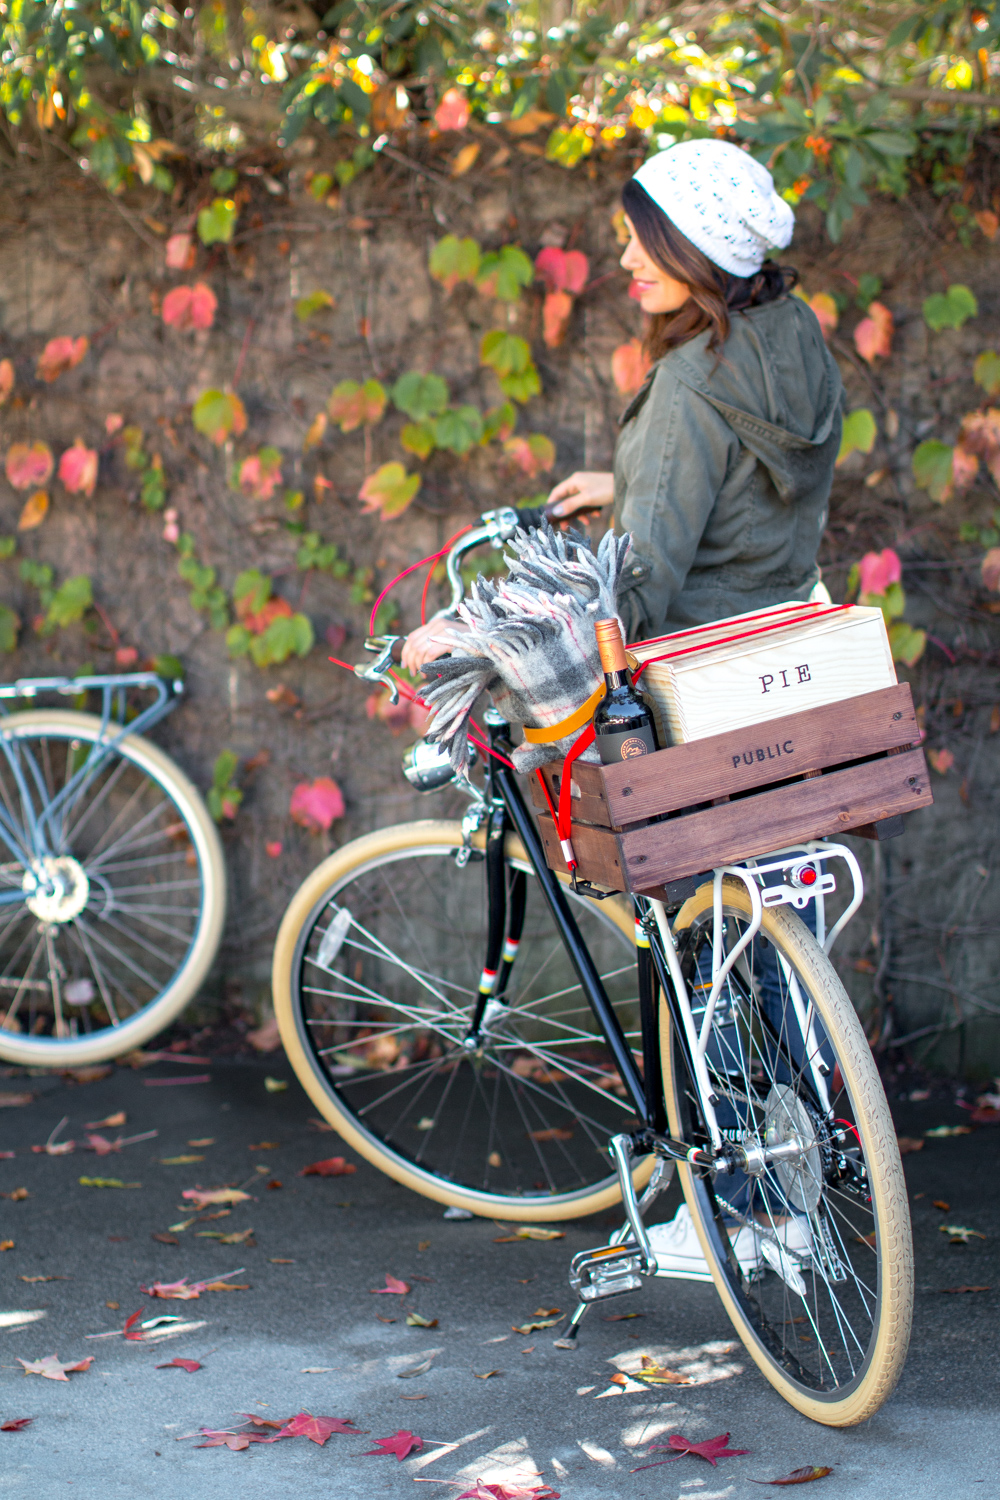 PUBLIC Bikes + Baking The Goods = <3